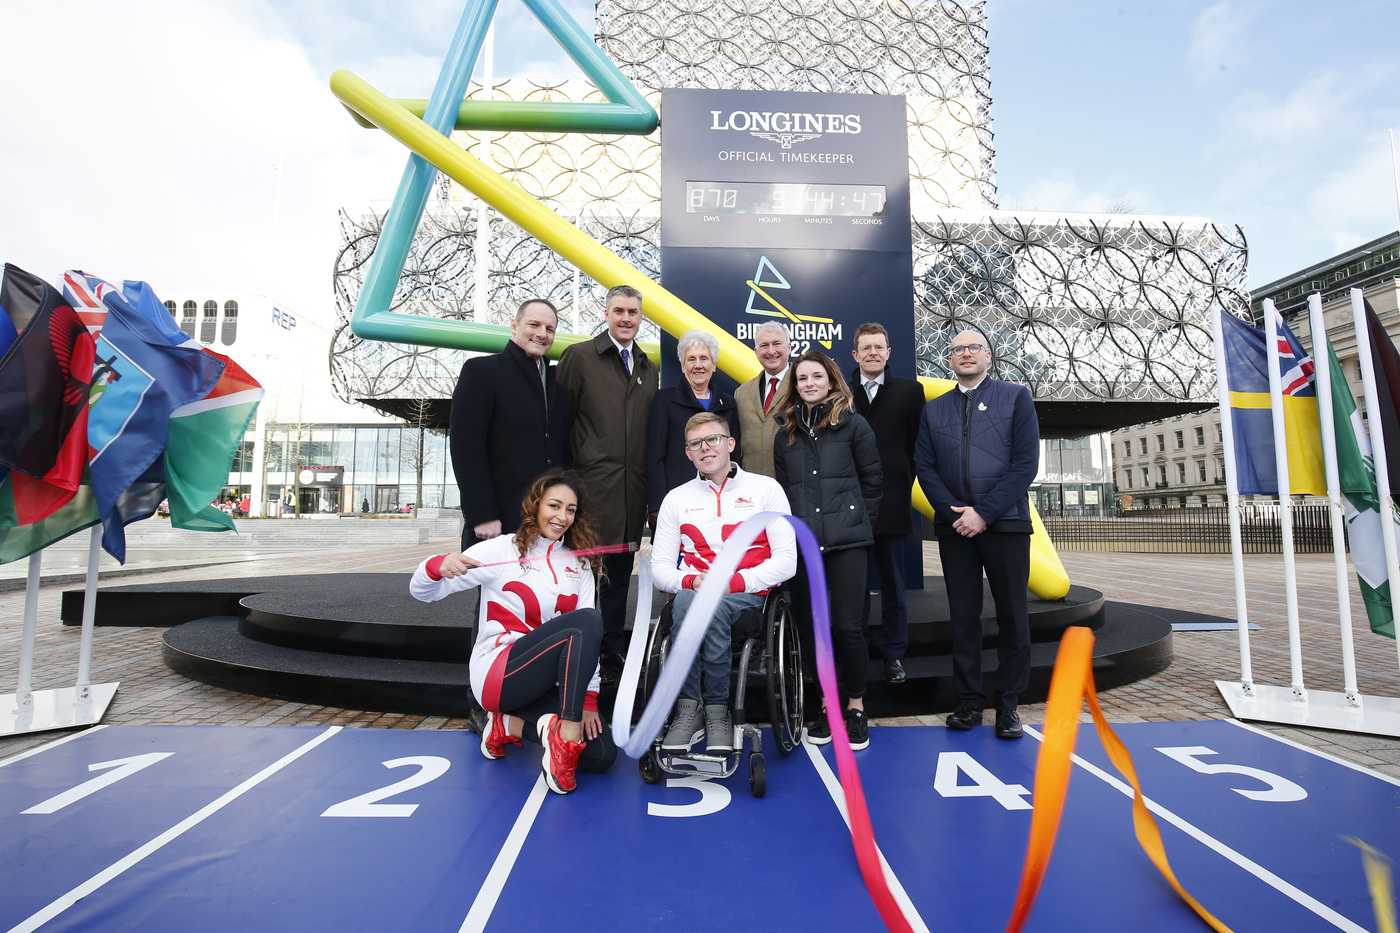 Longines Commonwealth Games Event: Longines and CGF agree historic multi-Commonwealth Games partnership, as Birmingham 2022 Countdown Clock is revealed 2